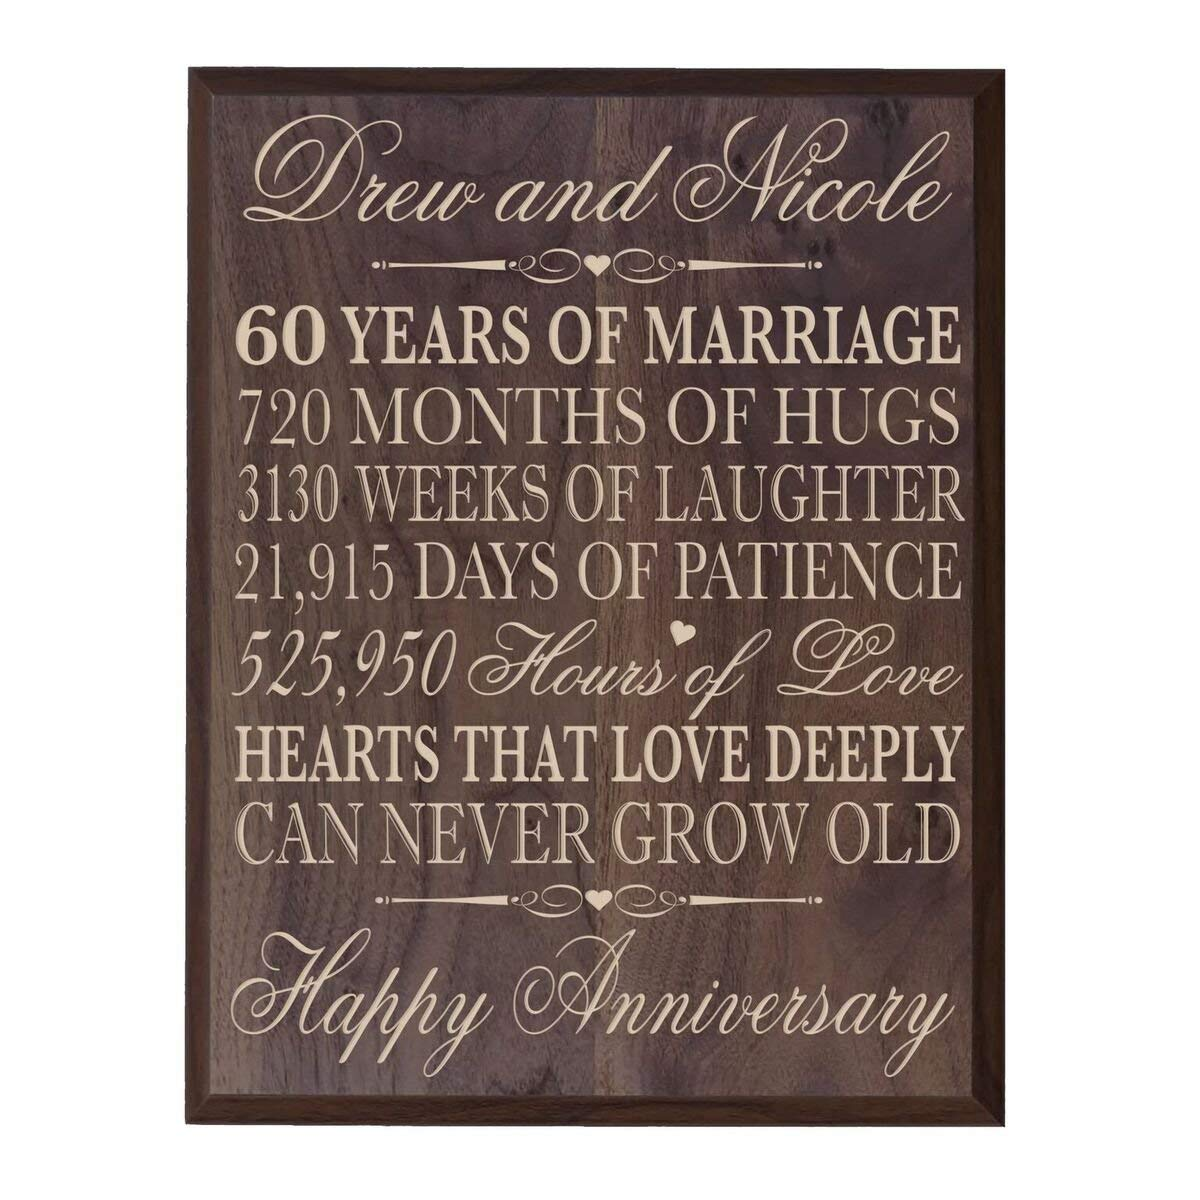 "Personalized 60th Wedding Anniversary Wall Plaque Gifts for Couple, Custom Made 60th Anniversary Gifts 12"" W X 15"" H Wall Plaque By LifeSong Milestones (12"" x 15"" x 1/2"", Grand Walnut)"